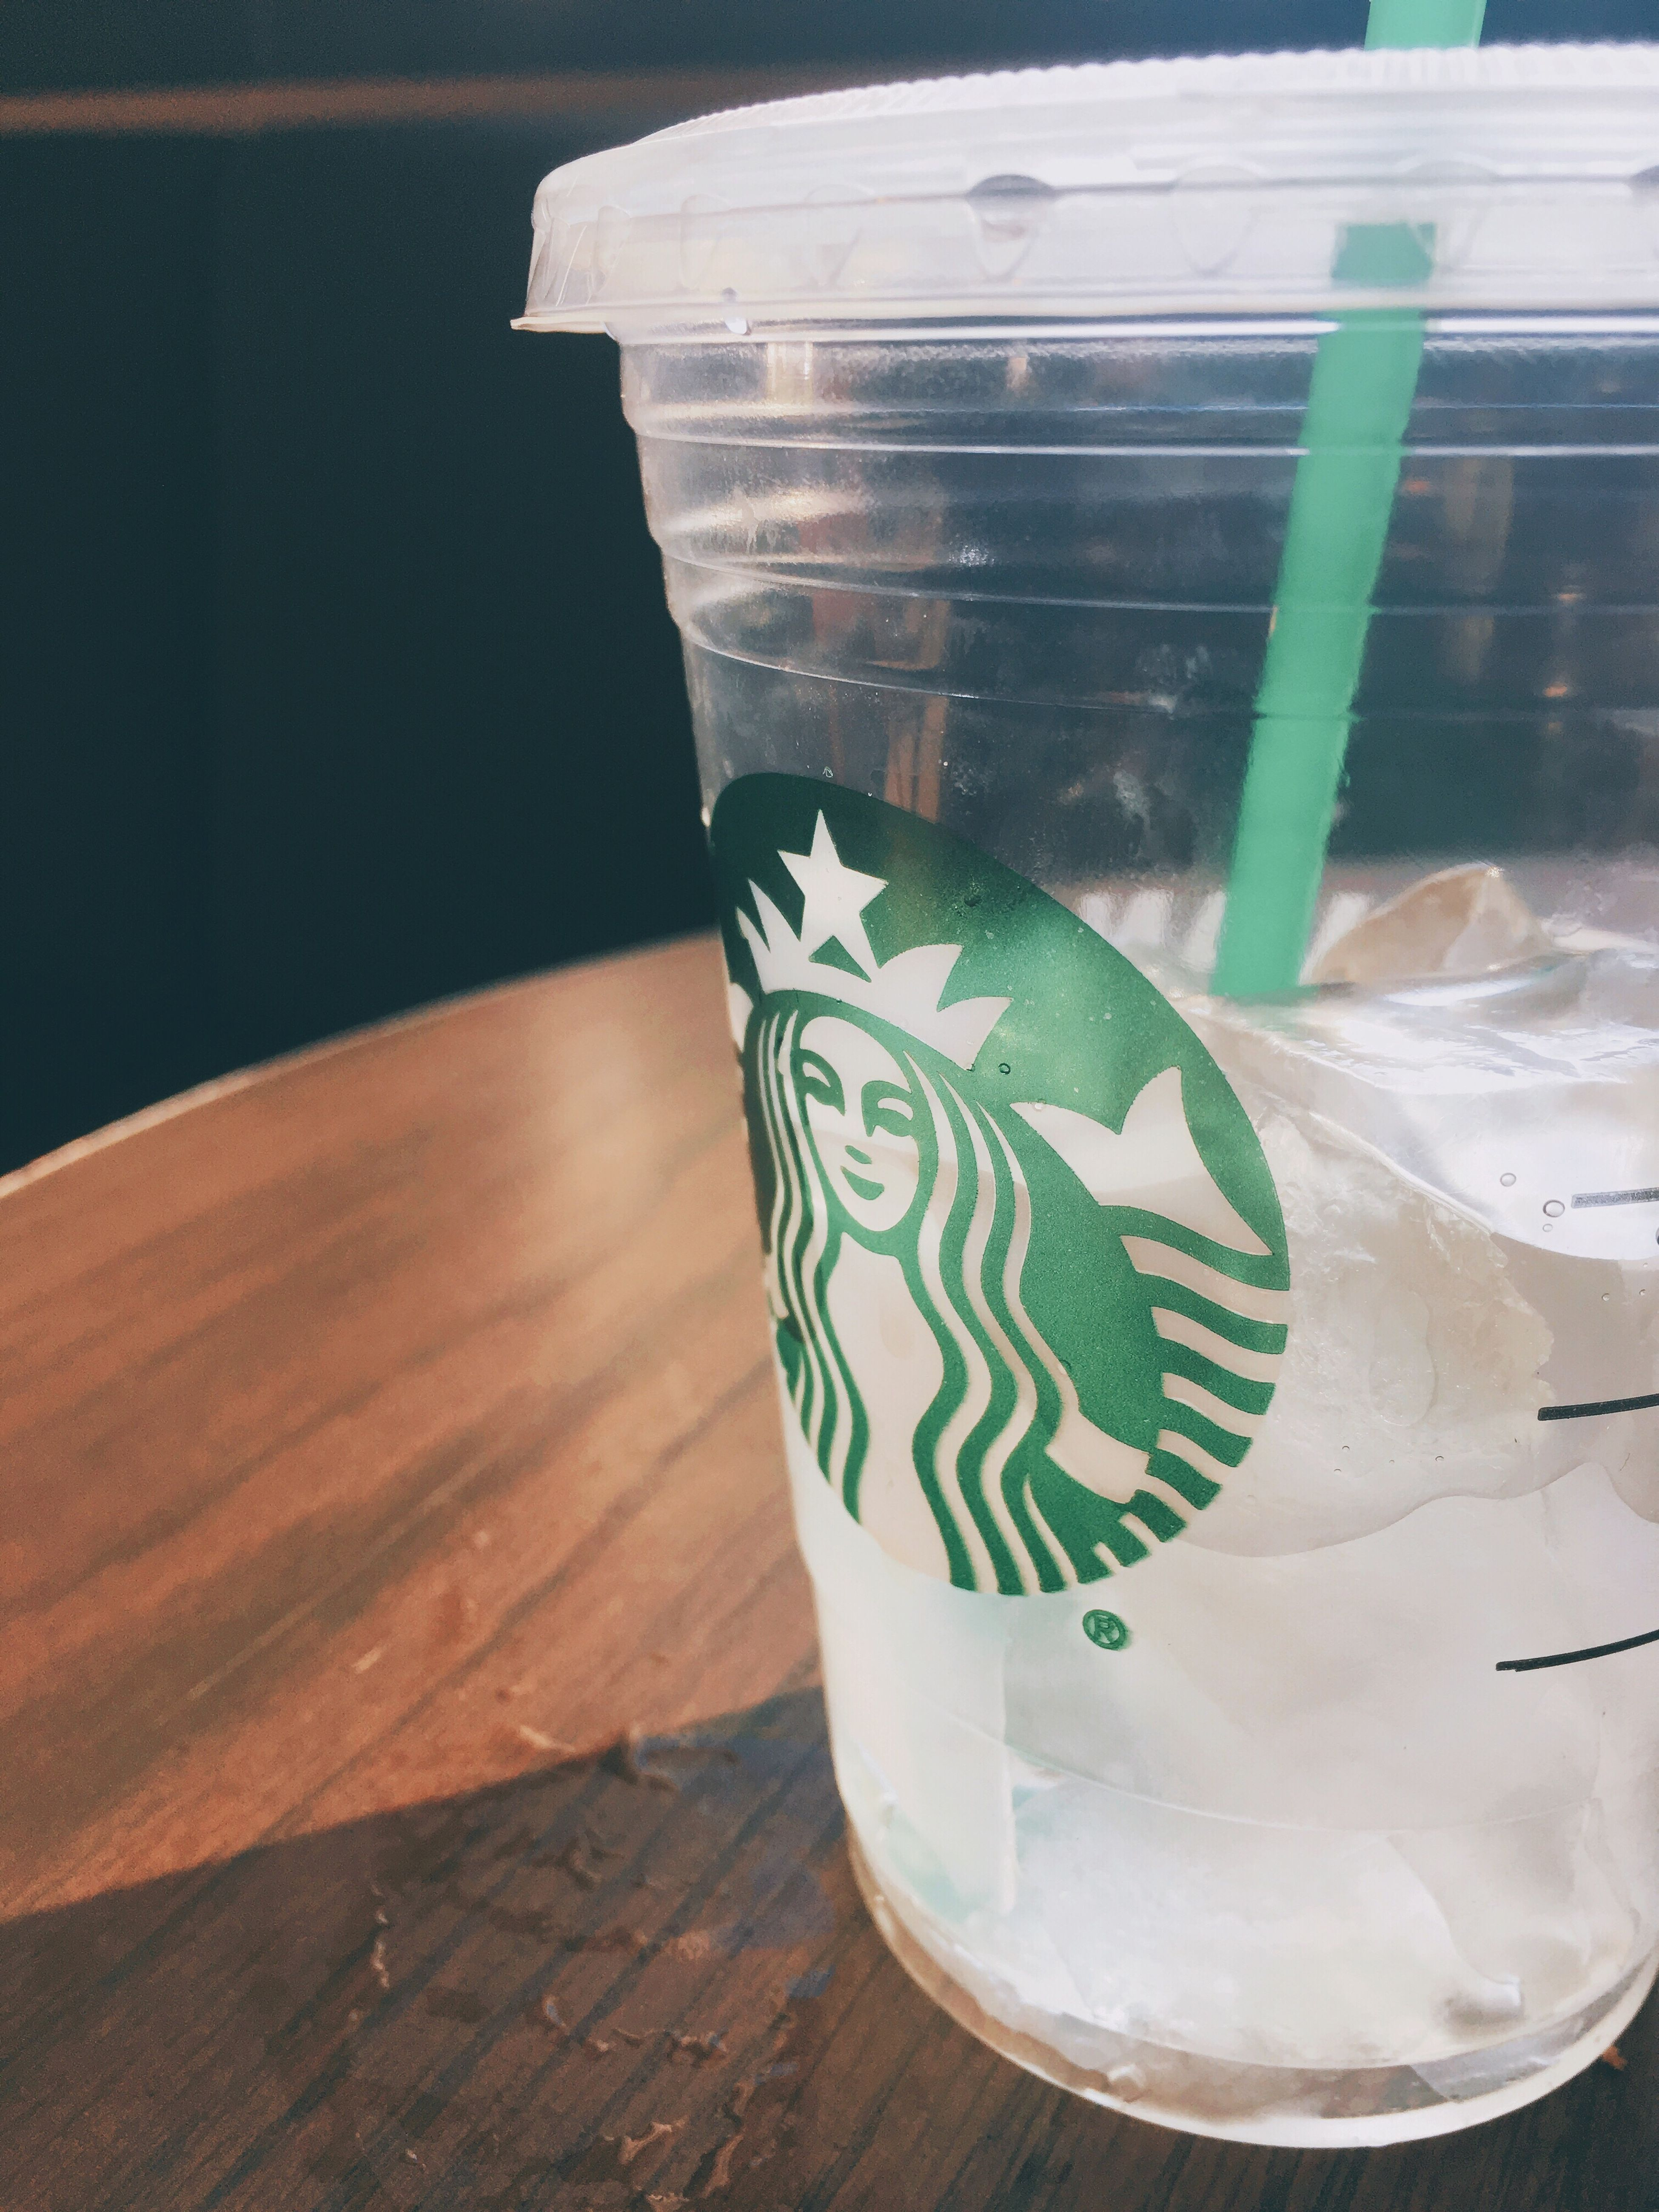 Starbucks Indoors  No People Table Green Color Close-up Day Freshness Water Colors Color Colorful Water Cup Starbucks Water